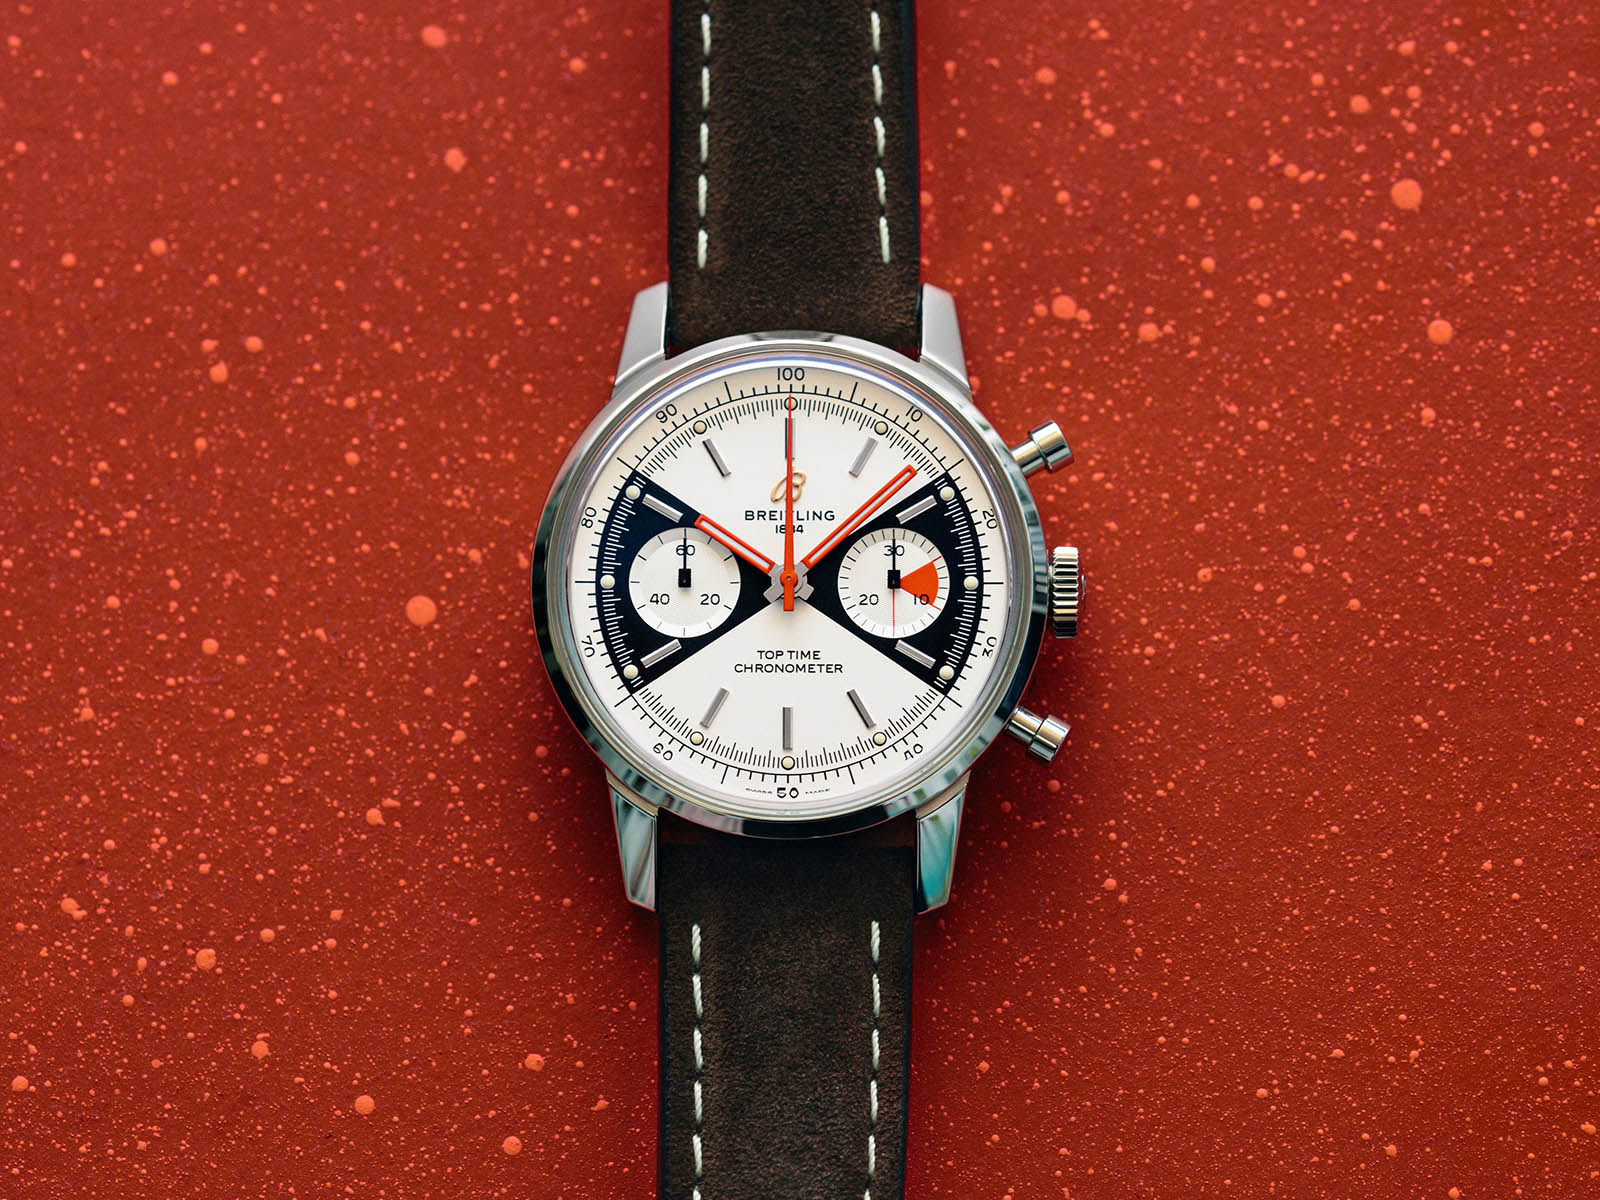 a23310121g1x1-breitling-top-time-limited-edition-2.jpg